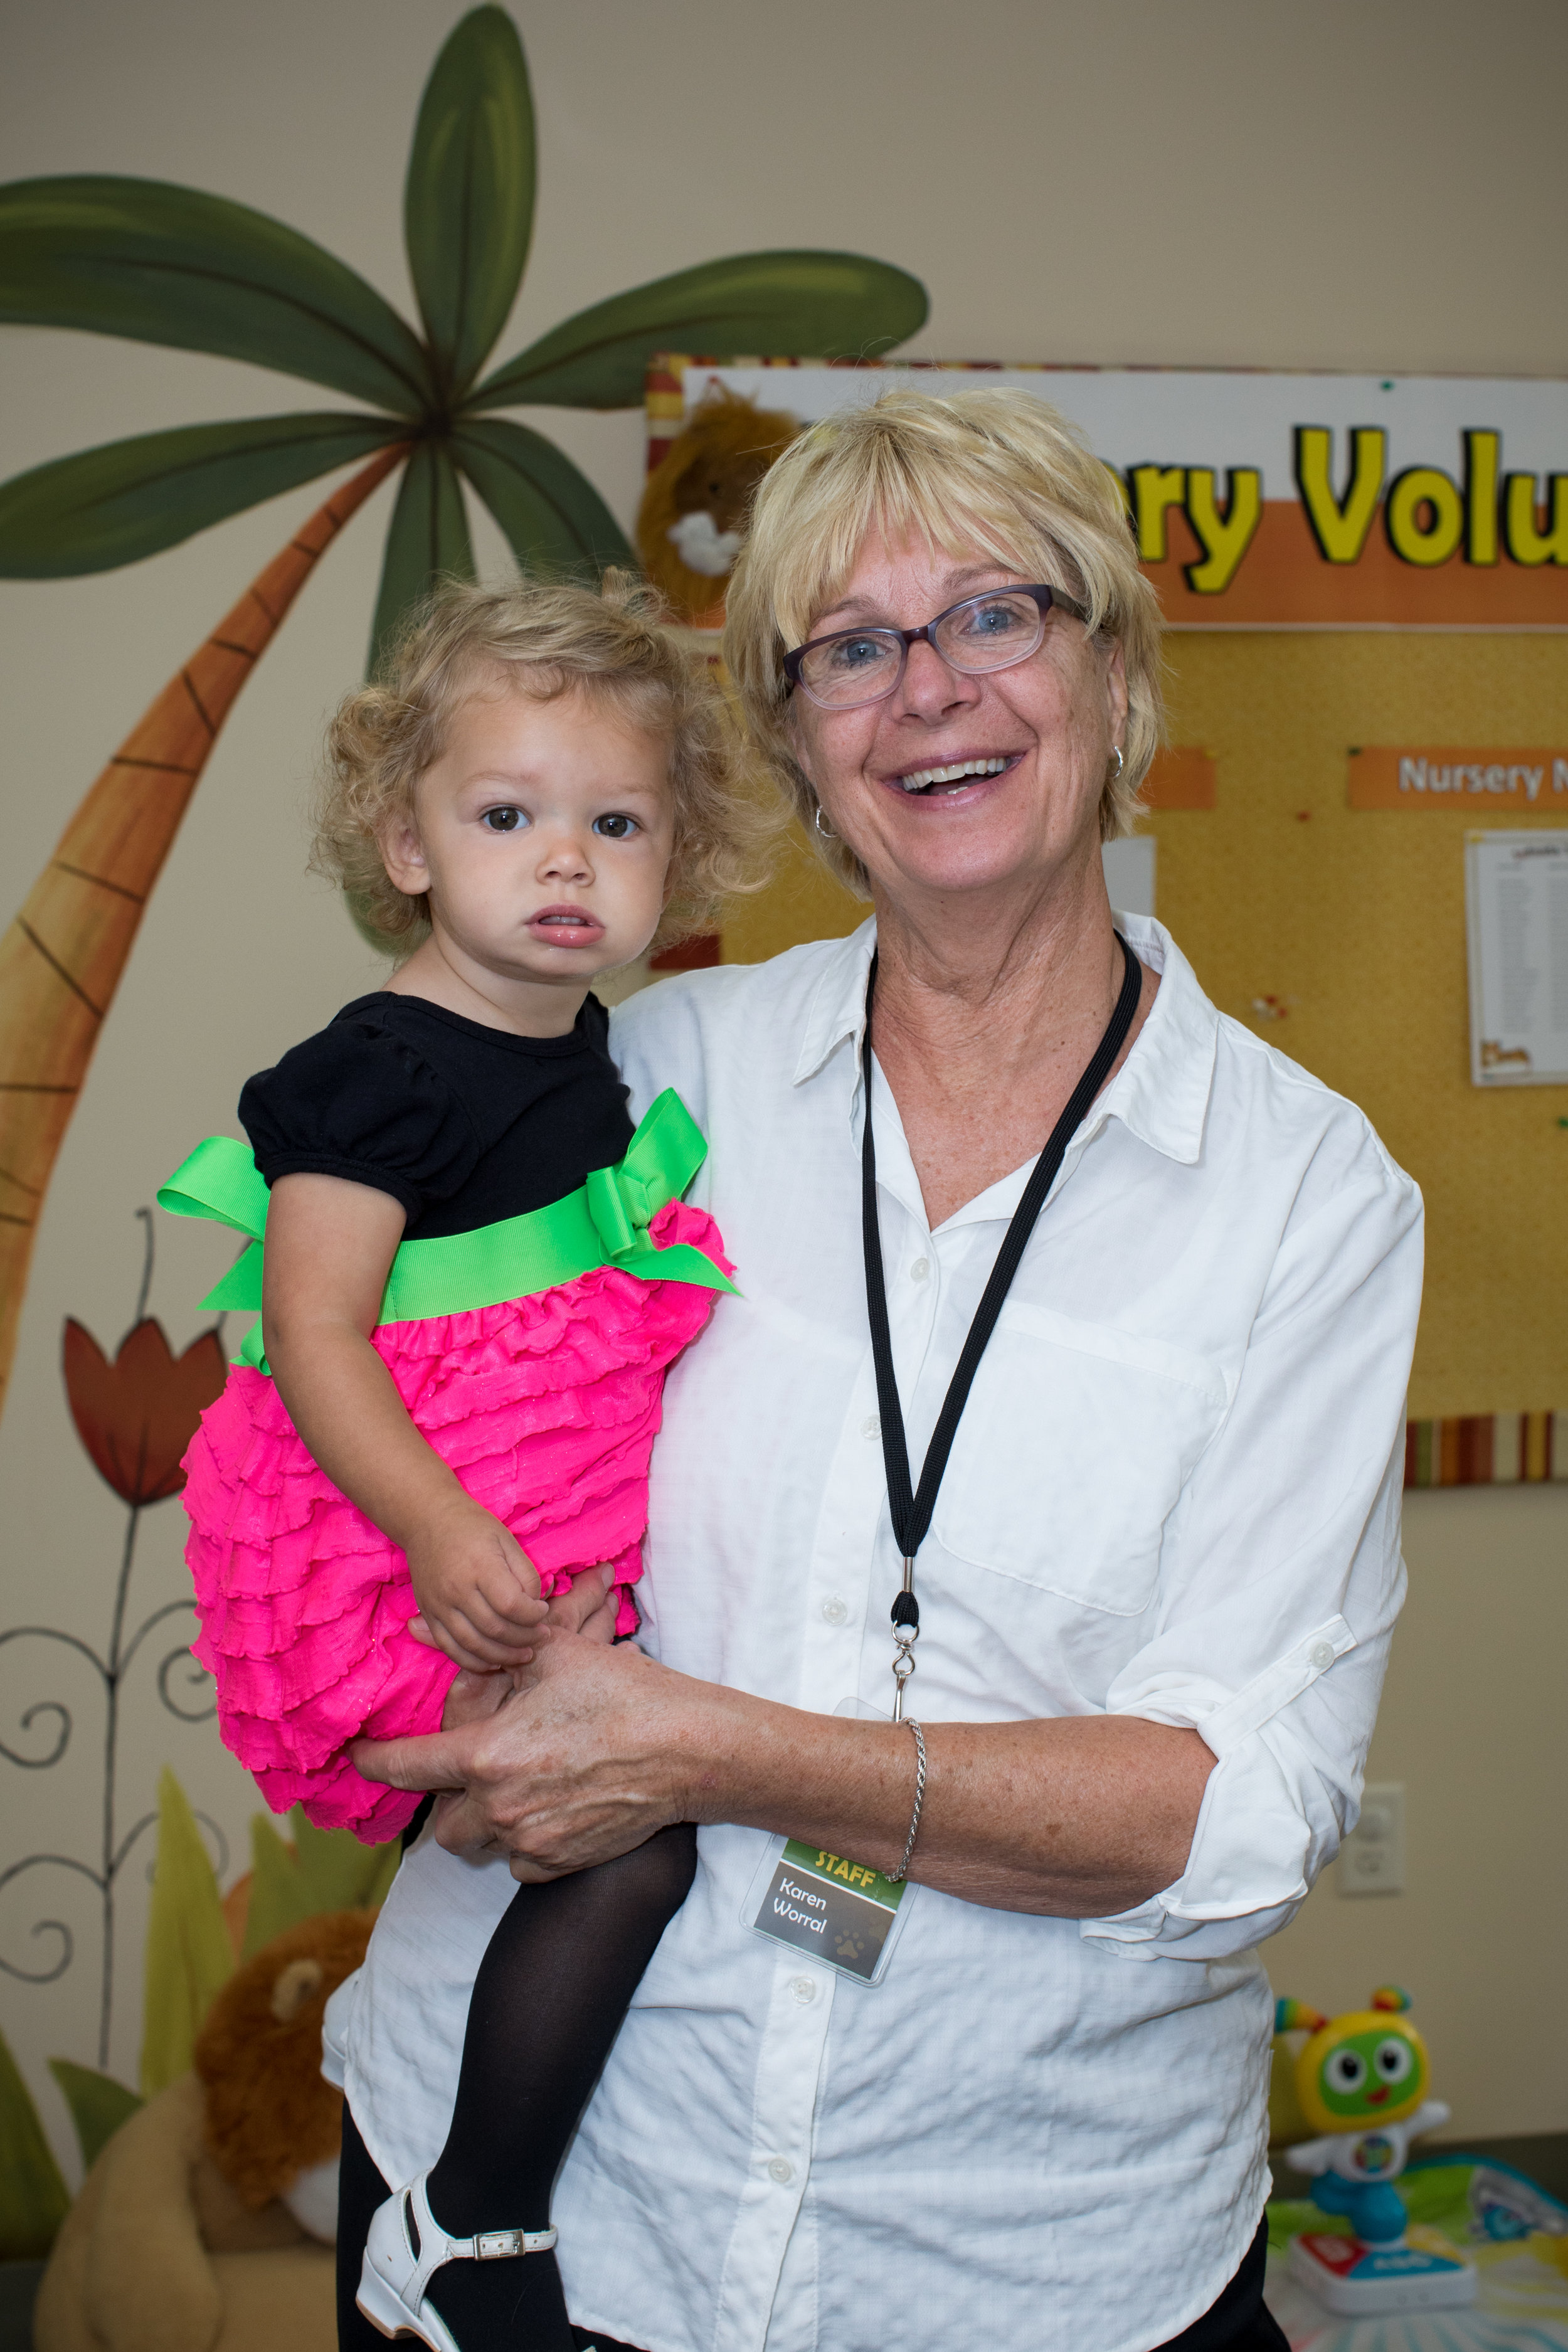 Nursery - 6:30-7:30 PMNursery for infants and toddlers are provided for parents attending adult programs.